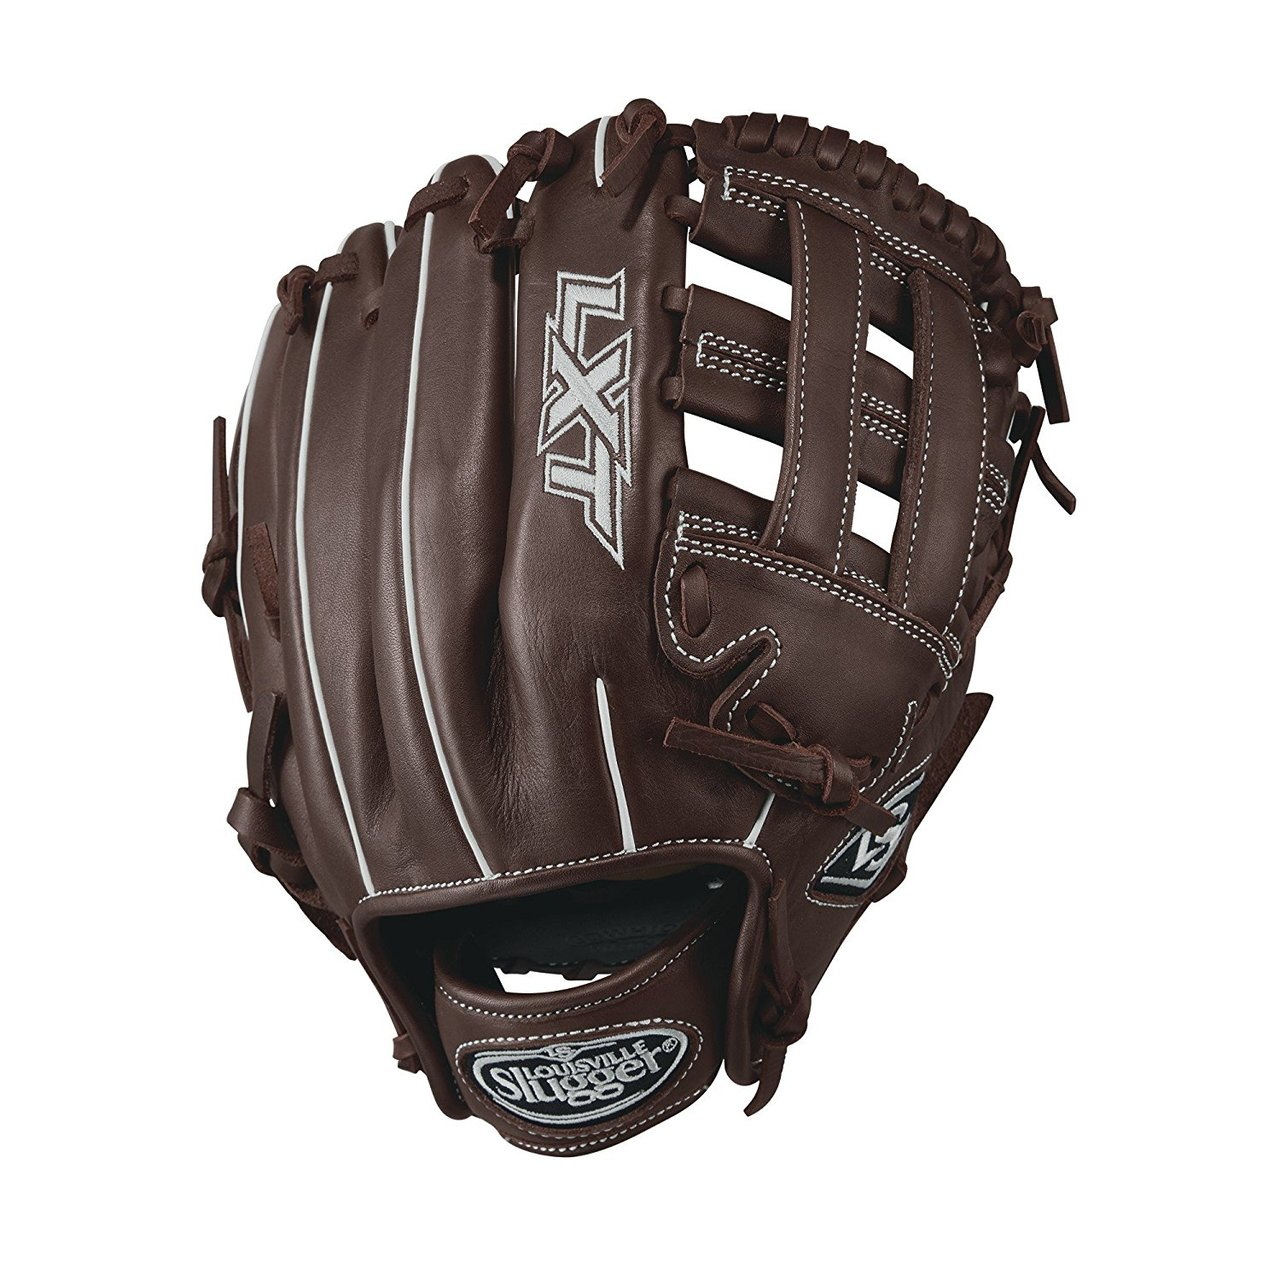 louisville-slugger-lxt-series-11-75-inch-fastpitch-softball-glove-right-hand-throw WTLLXRF17175-RightHandThrow Louisville 887768498139 Used by the top players the LXT has established itself as